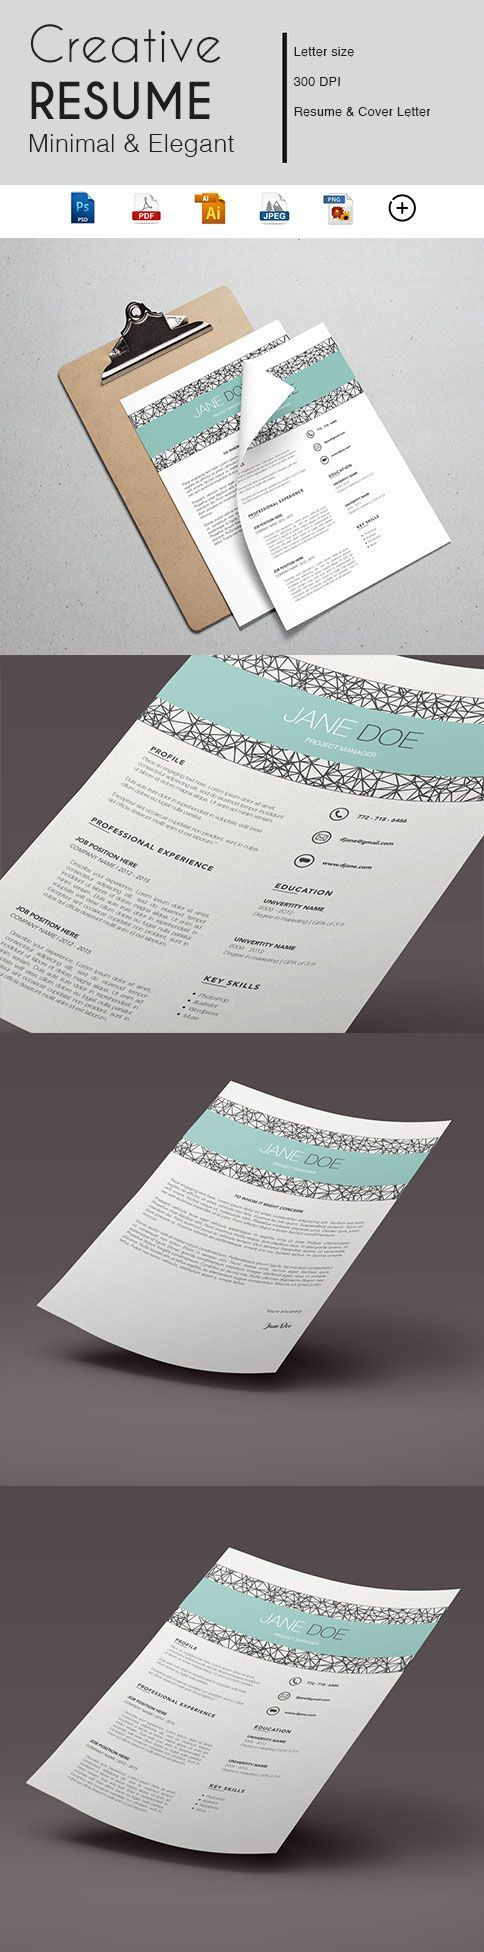 Gabellare | Get into action and make a great first impression with our resume template.  During a job search, your resume plays a major role. If you just started searching for a job or simply looking to brand yourself with the professional look your employers are hoping for, make sure you give a great impression with an eye catching resume design.